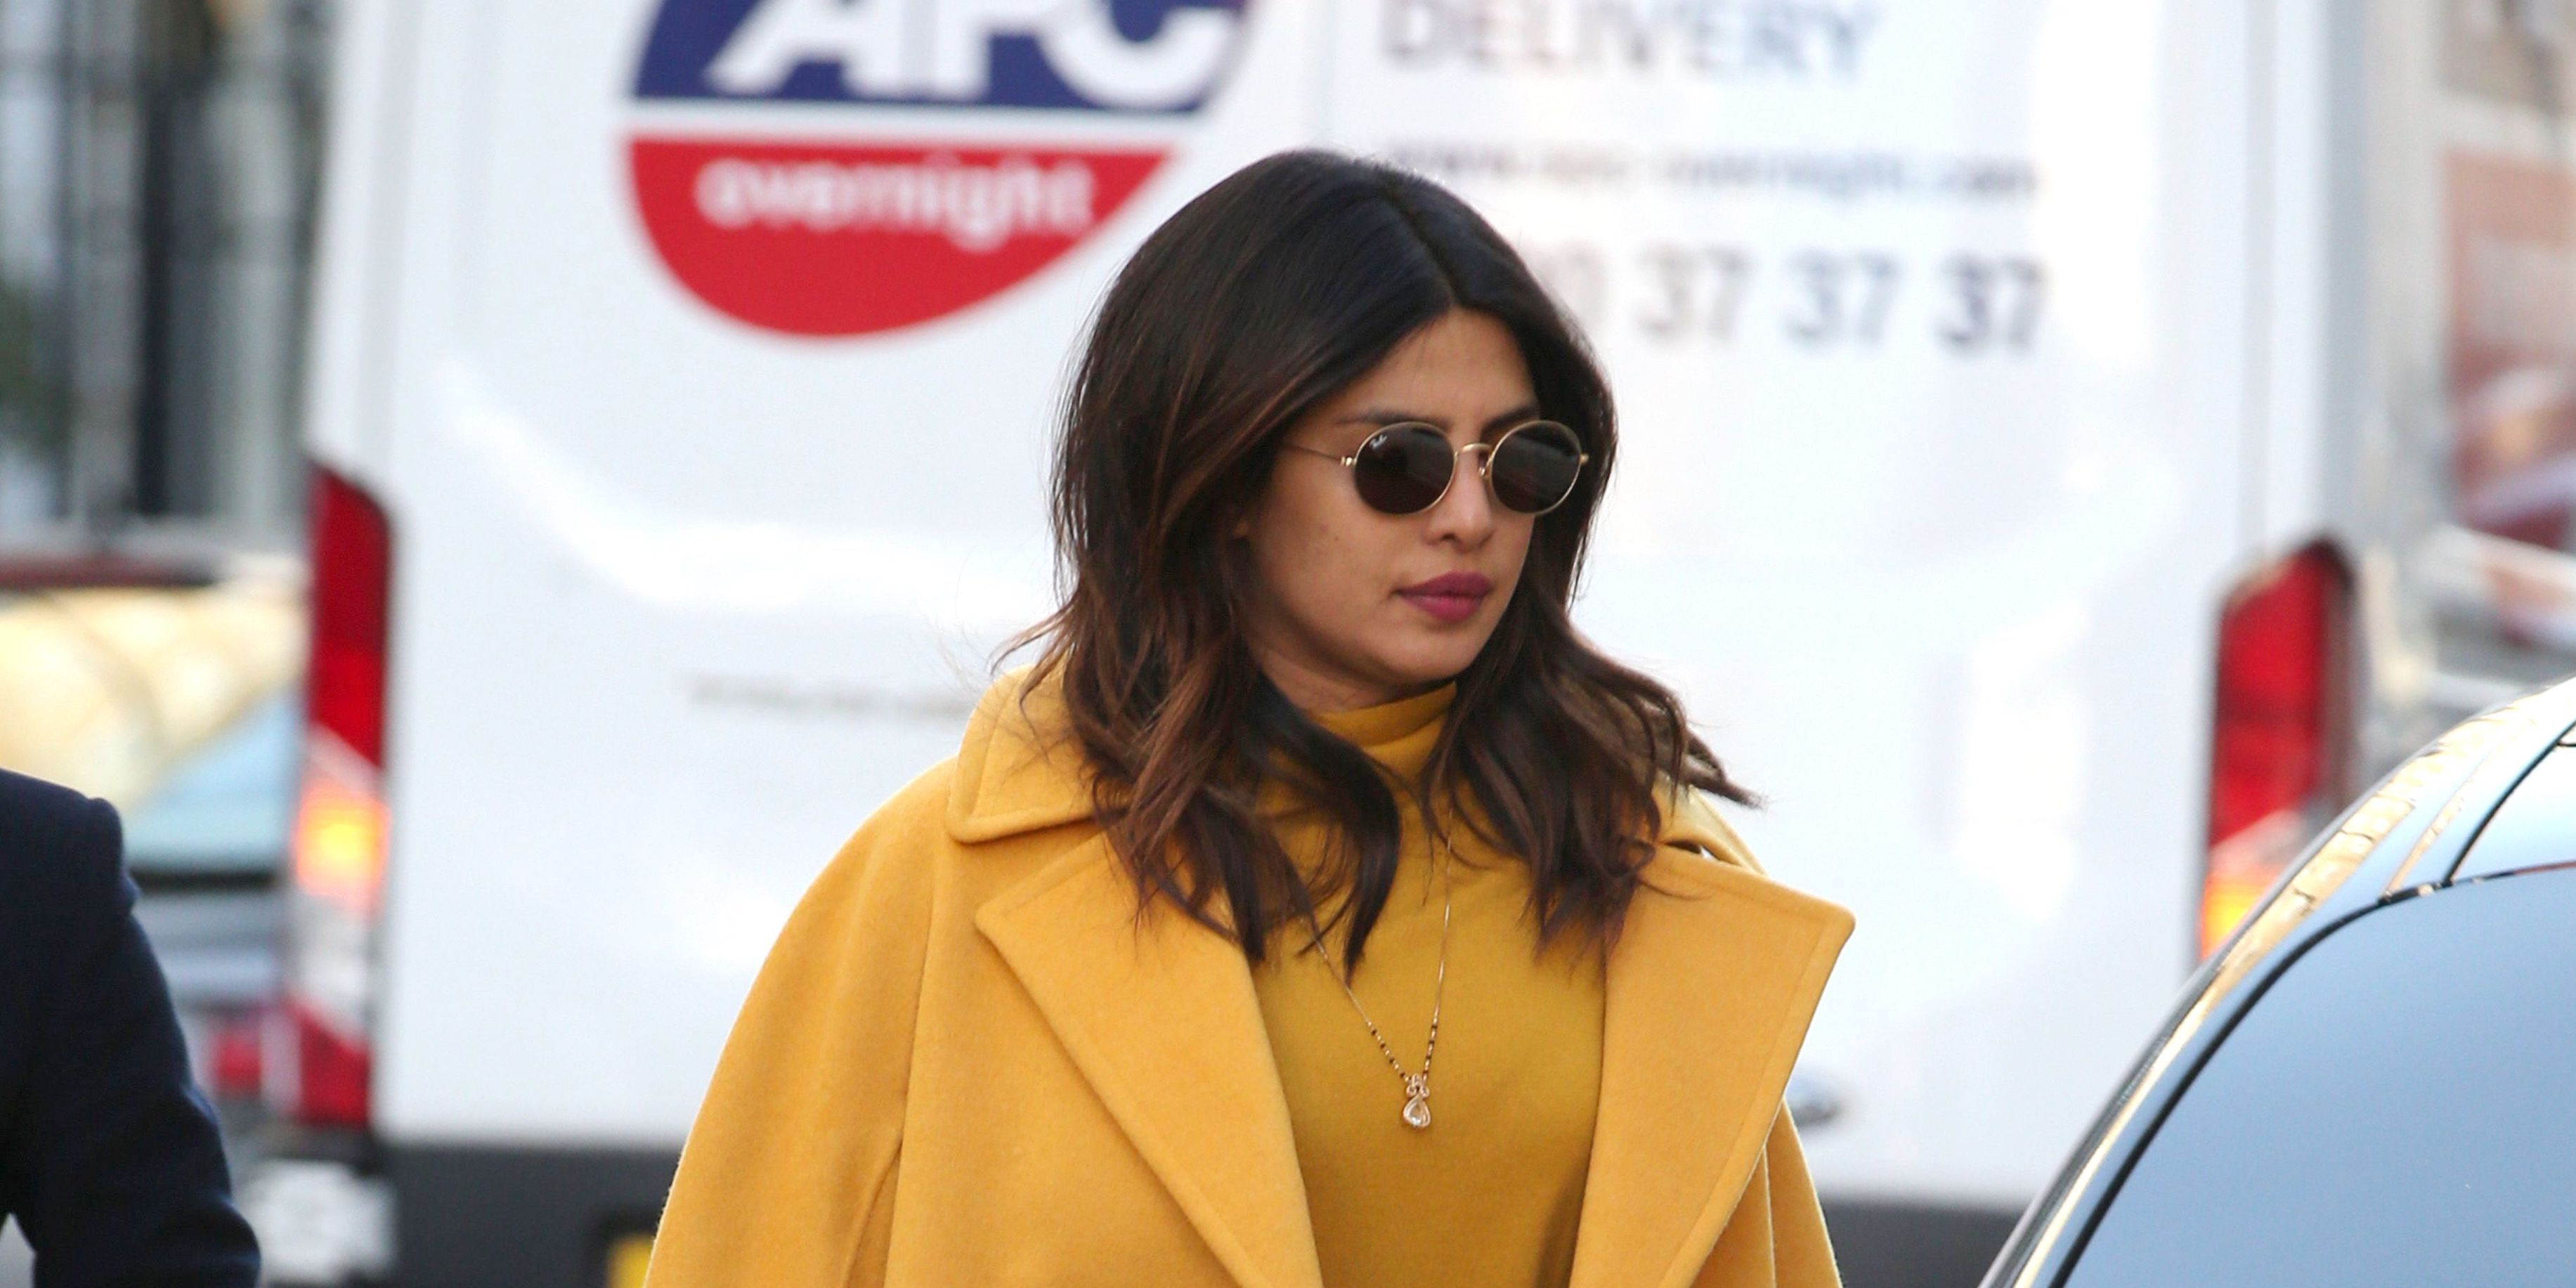 Priyanka Chopra out and about, London, UK - 15 Feb 2019